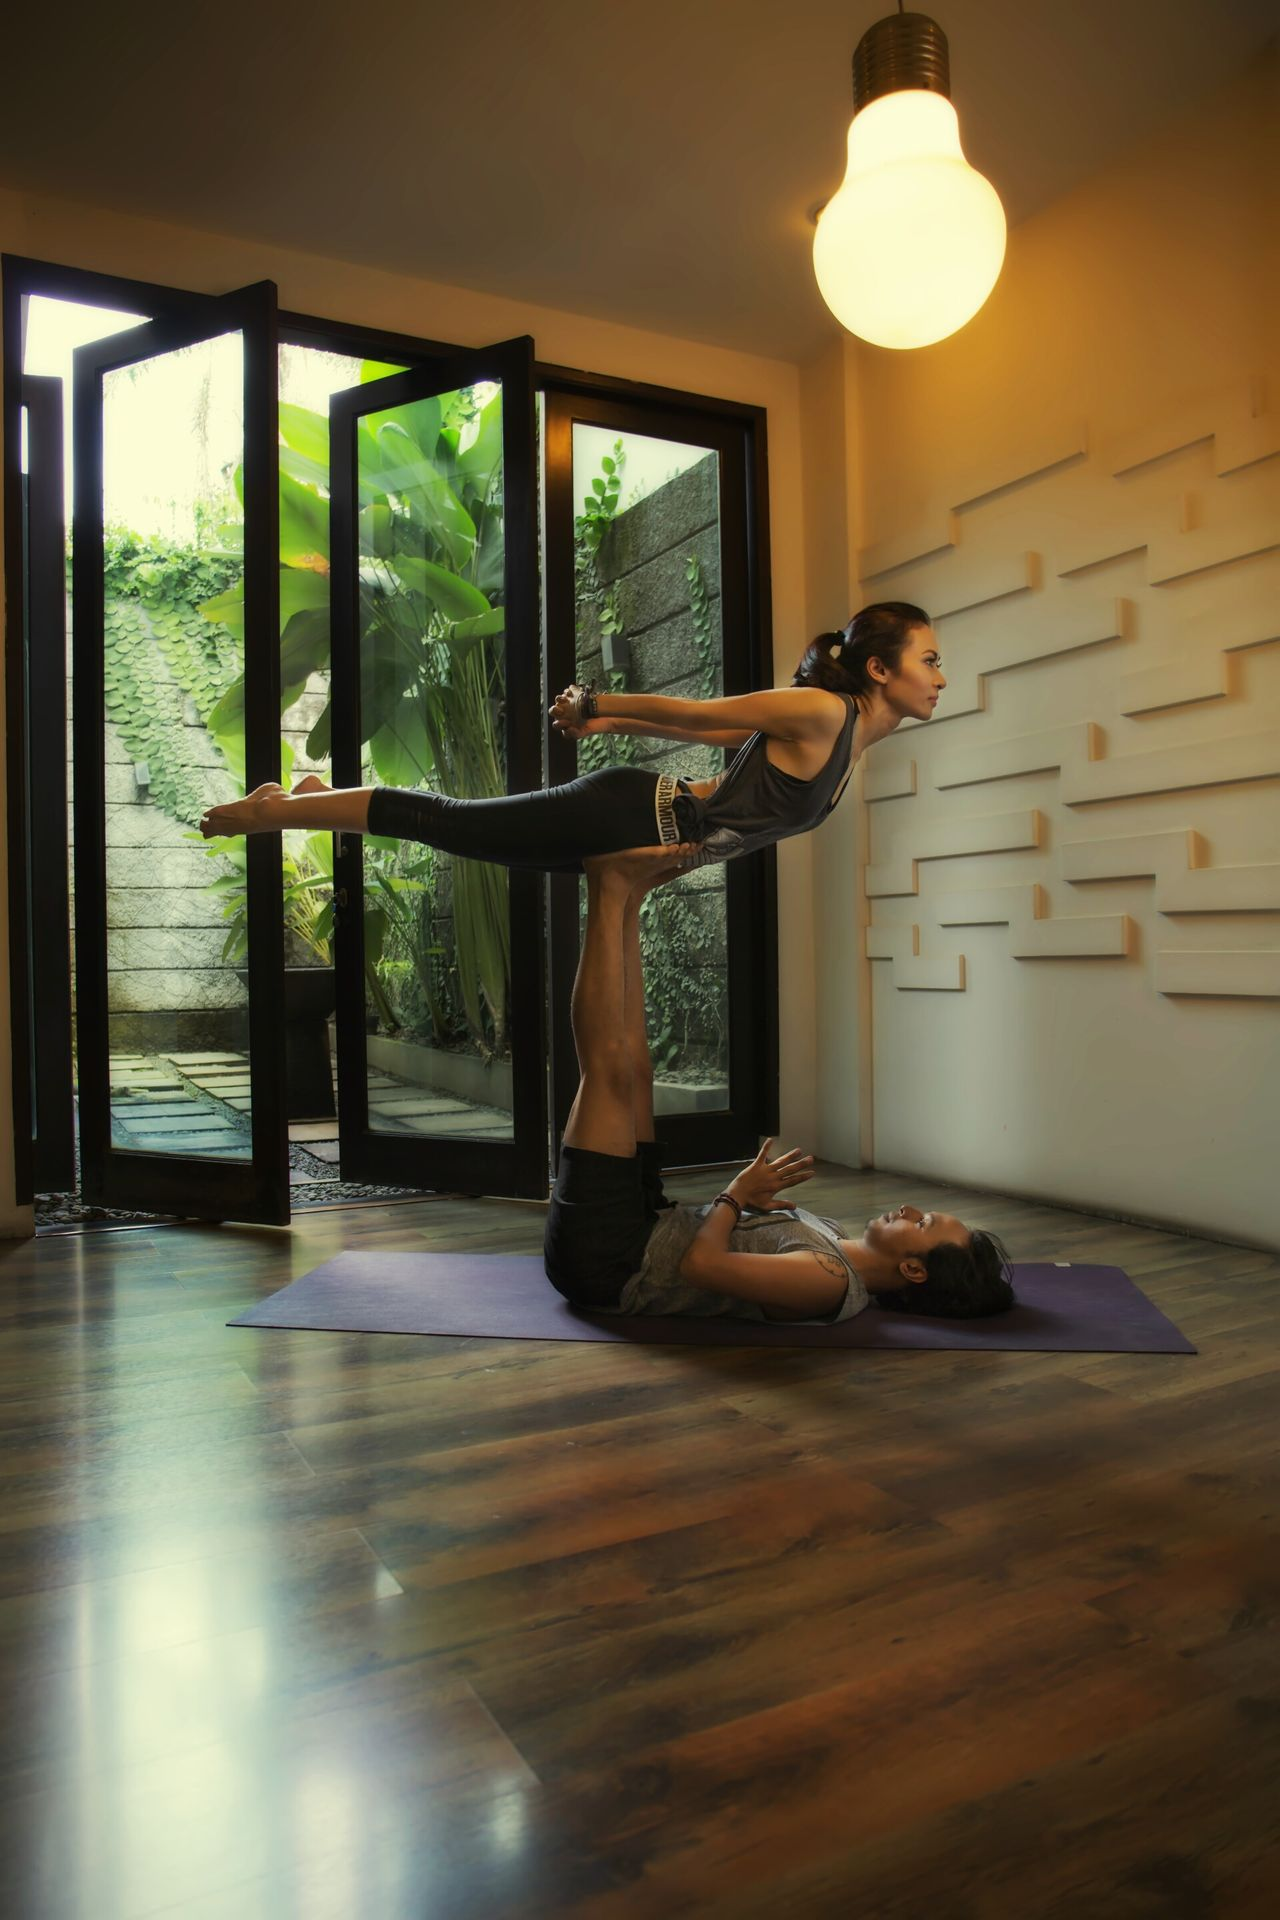 Indoors  Only Women One Person Adult Sport Yoga Yoga Pose Yogagirl Yogainspiration Yogalife Yogaeveryday Photo Photooftheday People Sexywoman Hotgirl Artoftheday Sexygirl ArtWork Indonesian Photographers Collection Woman Portrait Women EyeEmNewHere